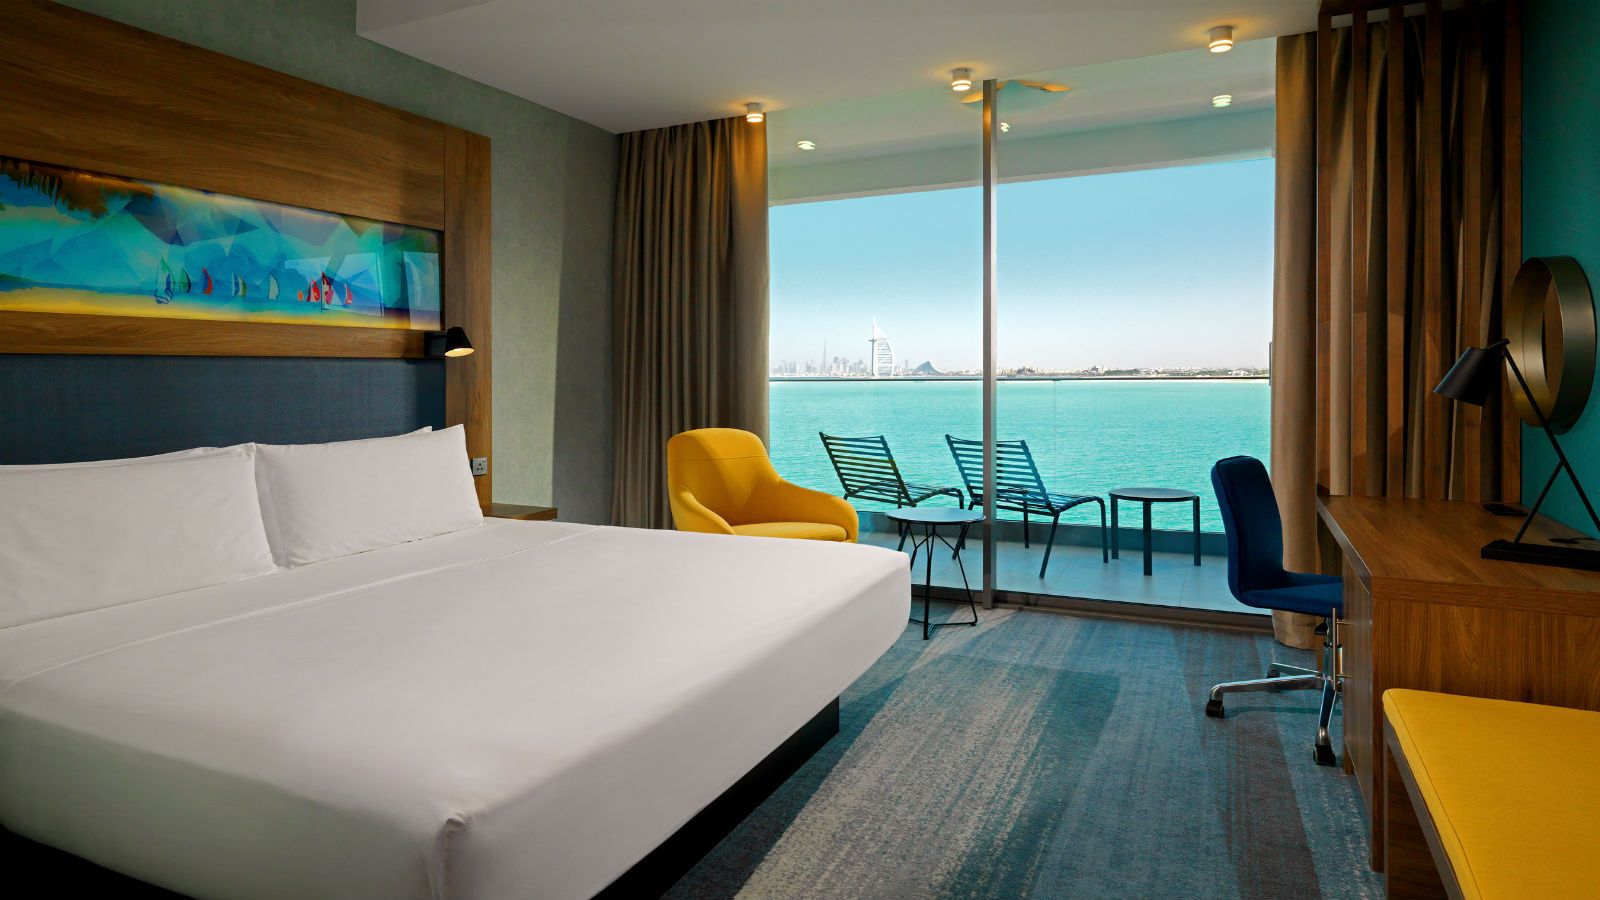 Aloft Seaview Room